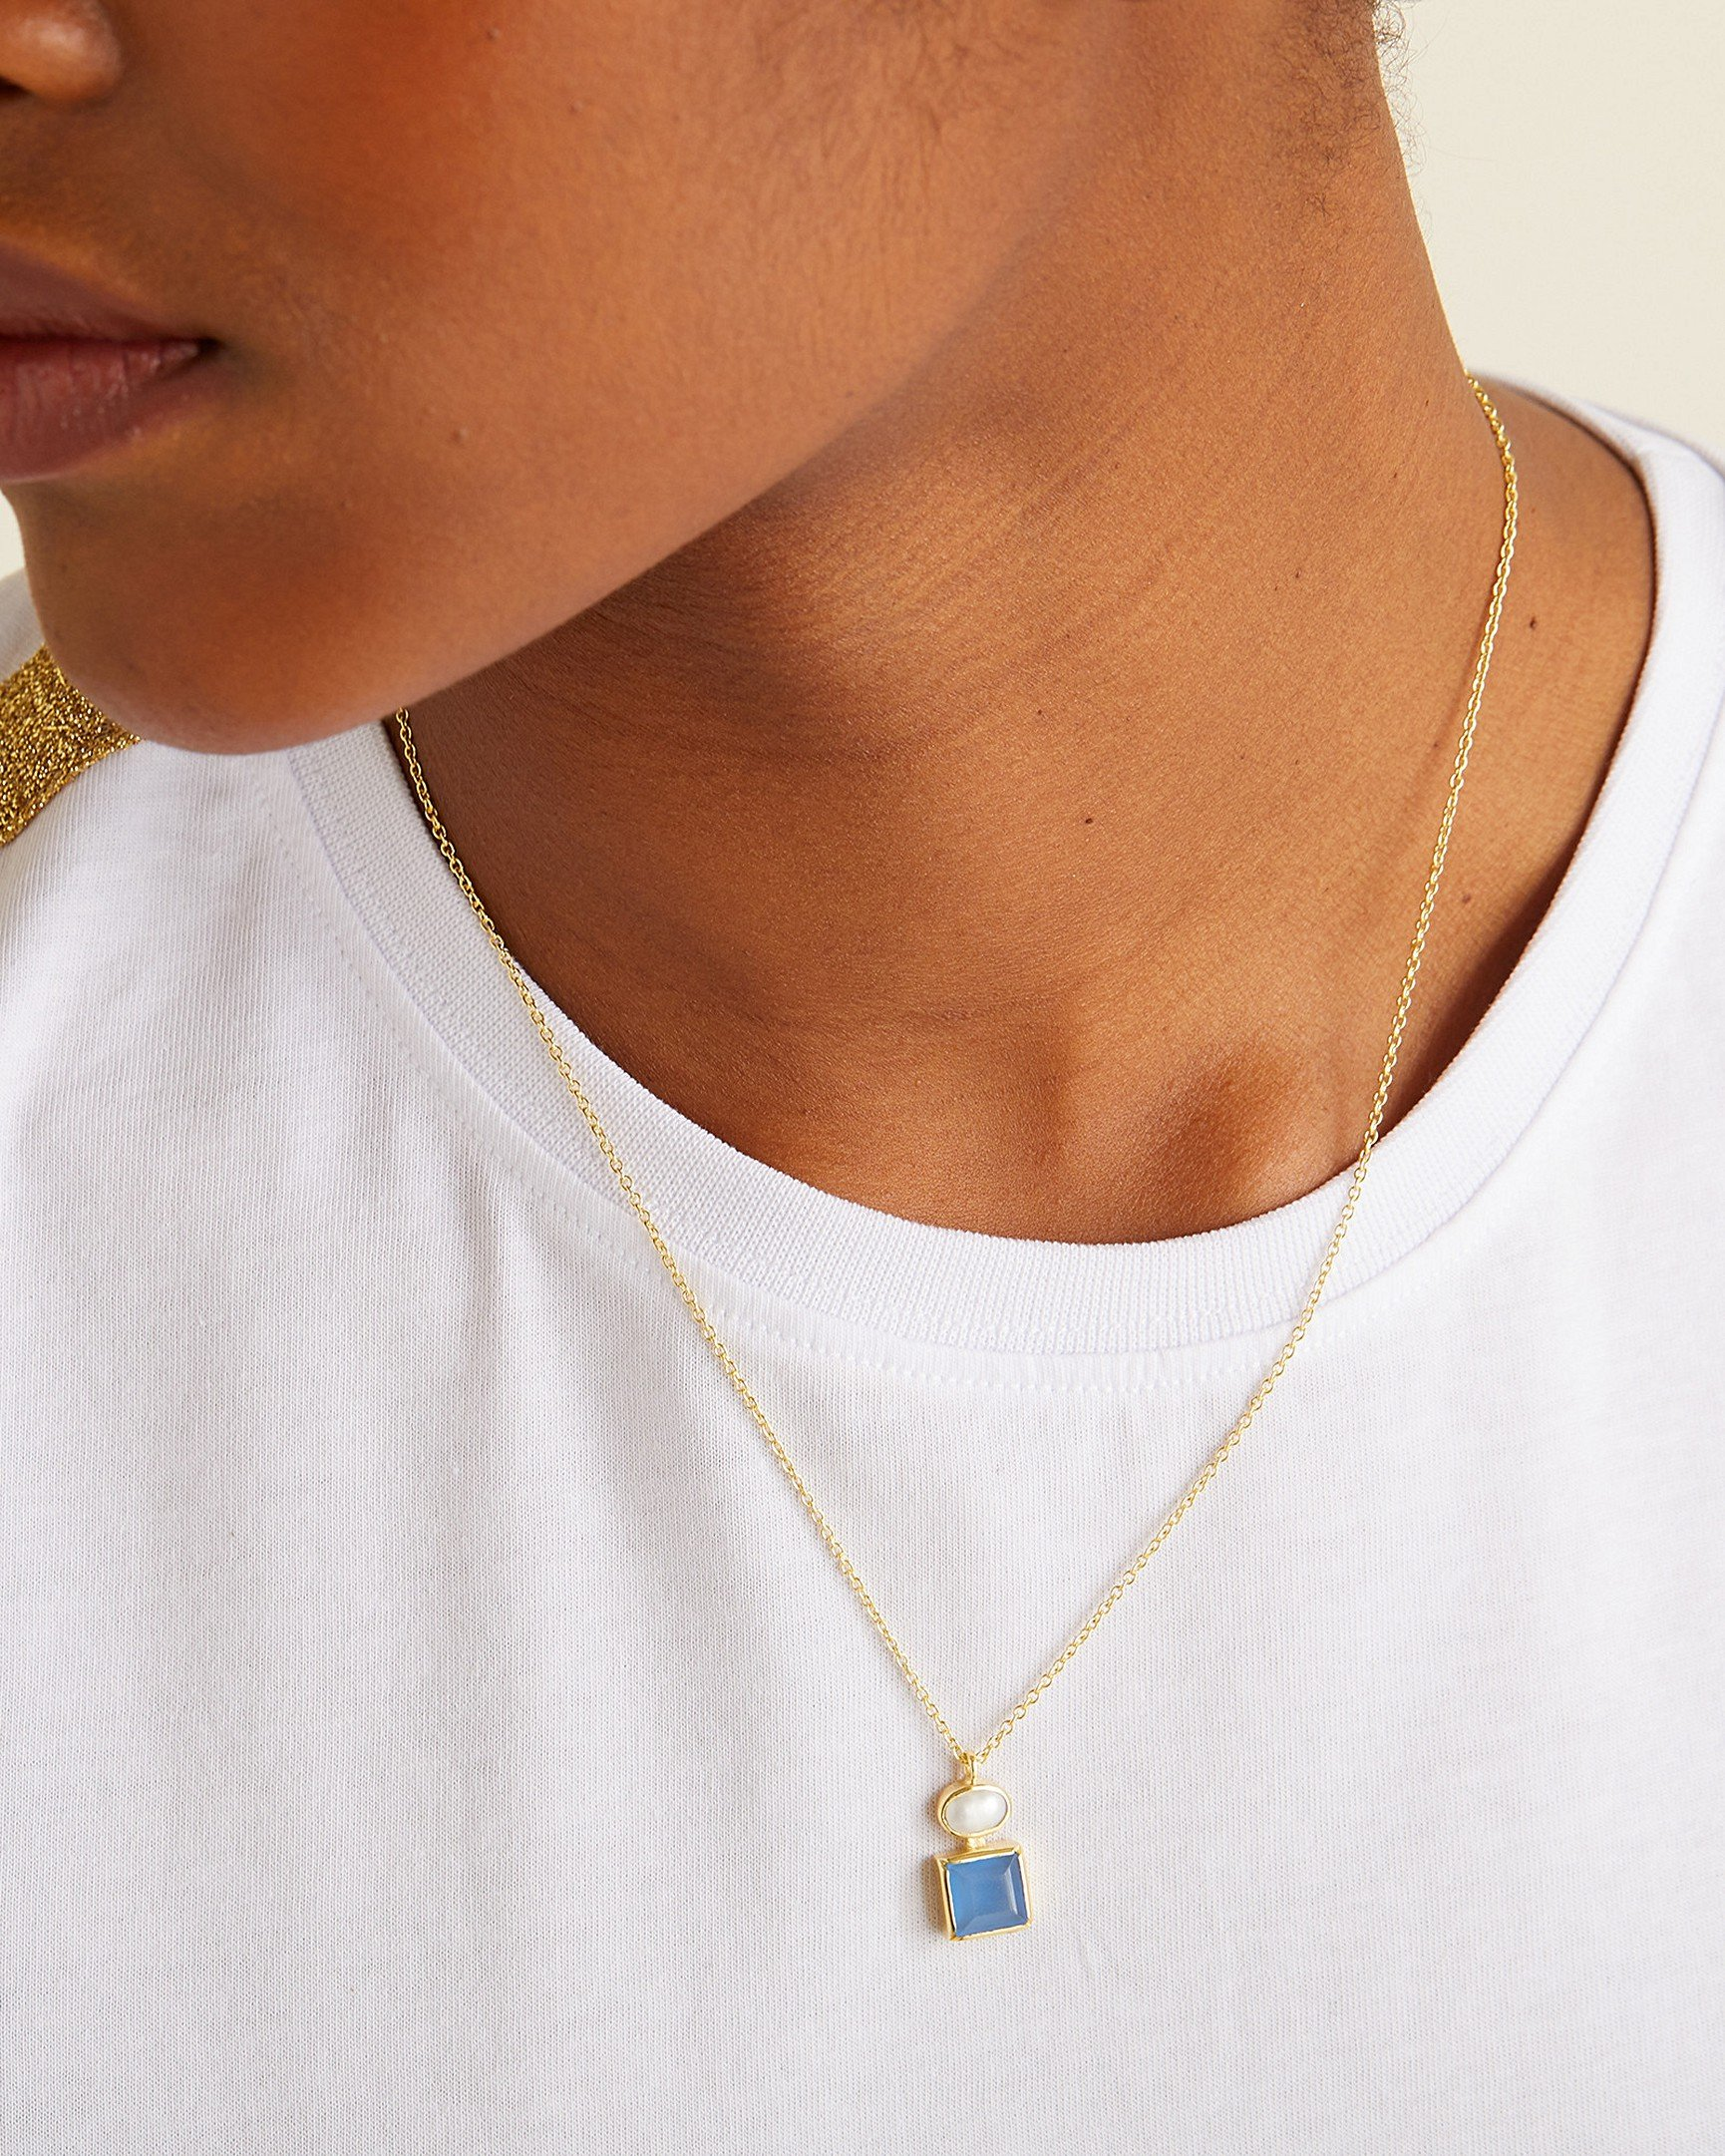 fe1ce66b3e494c Necklaces & Pendant Necklaces for Women | Oliver Bonas